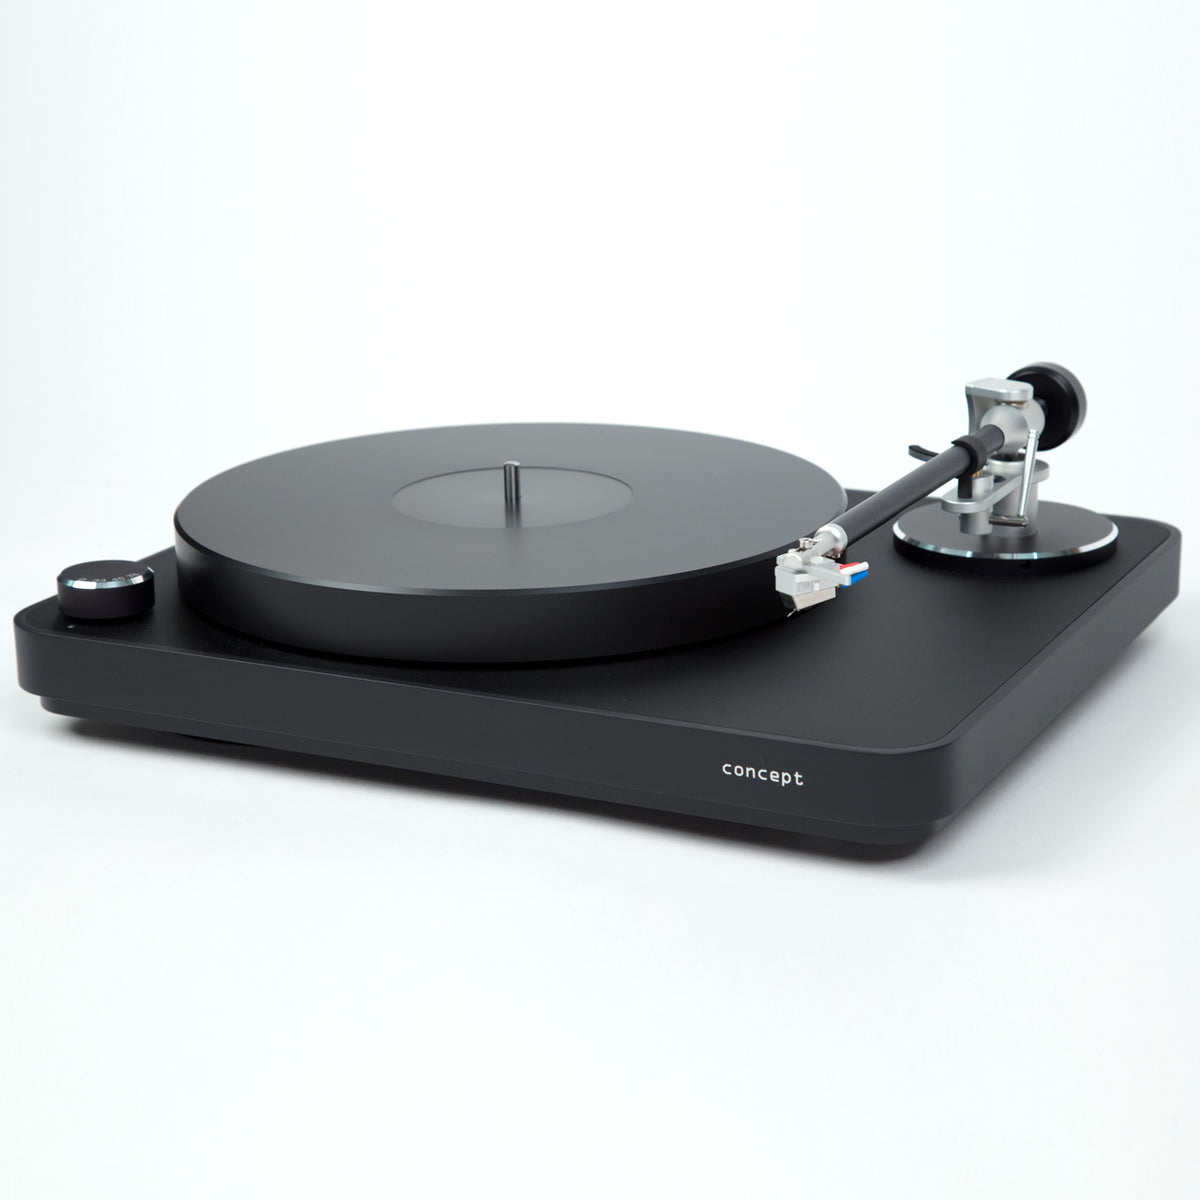 Clearaudio: Concept Black Turntable - Concept Tonearm / Concept MM Cartridge